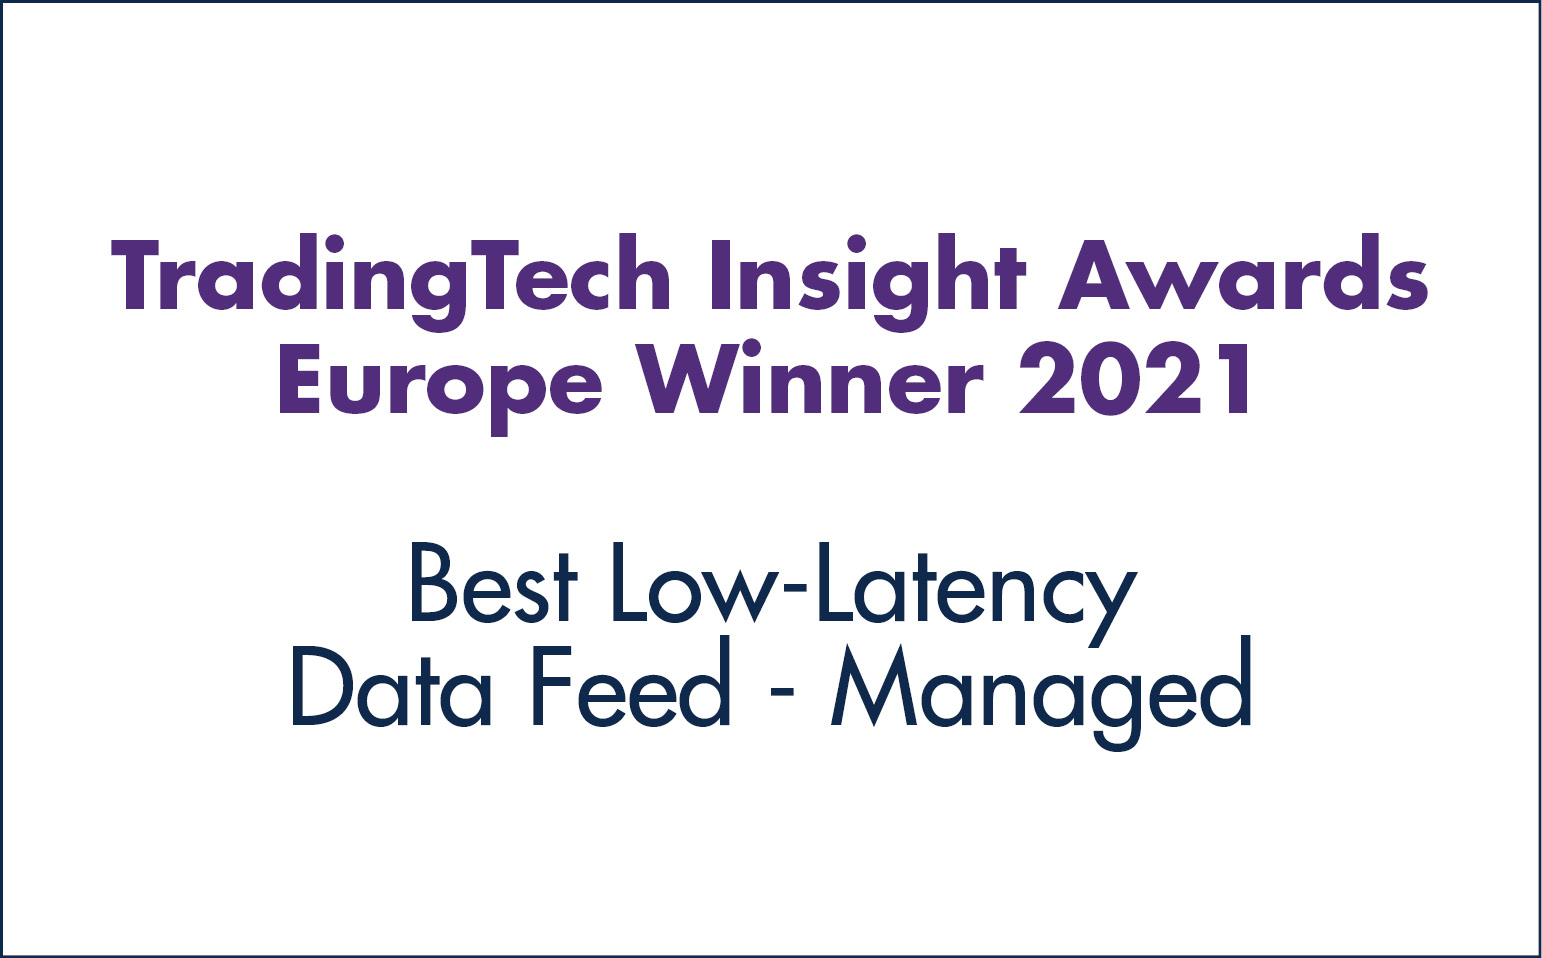 Best Low-Latency Data Feed - Managed